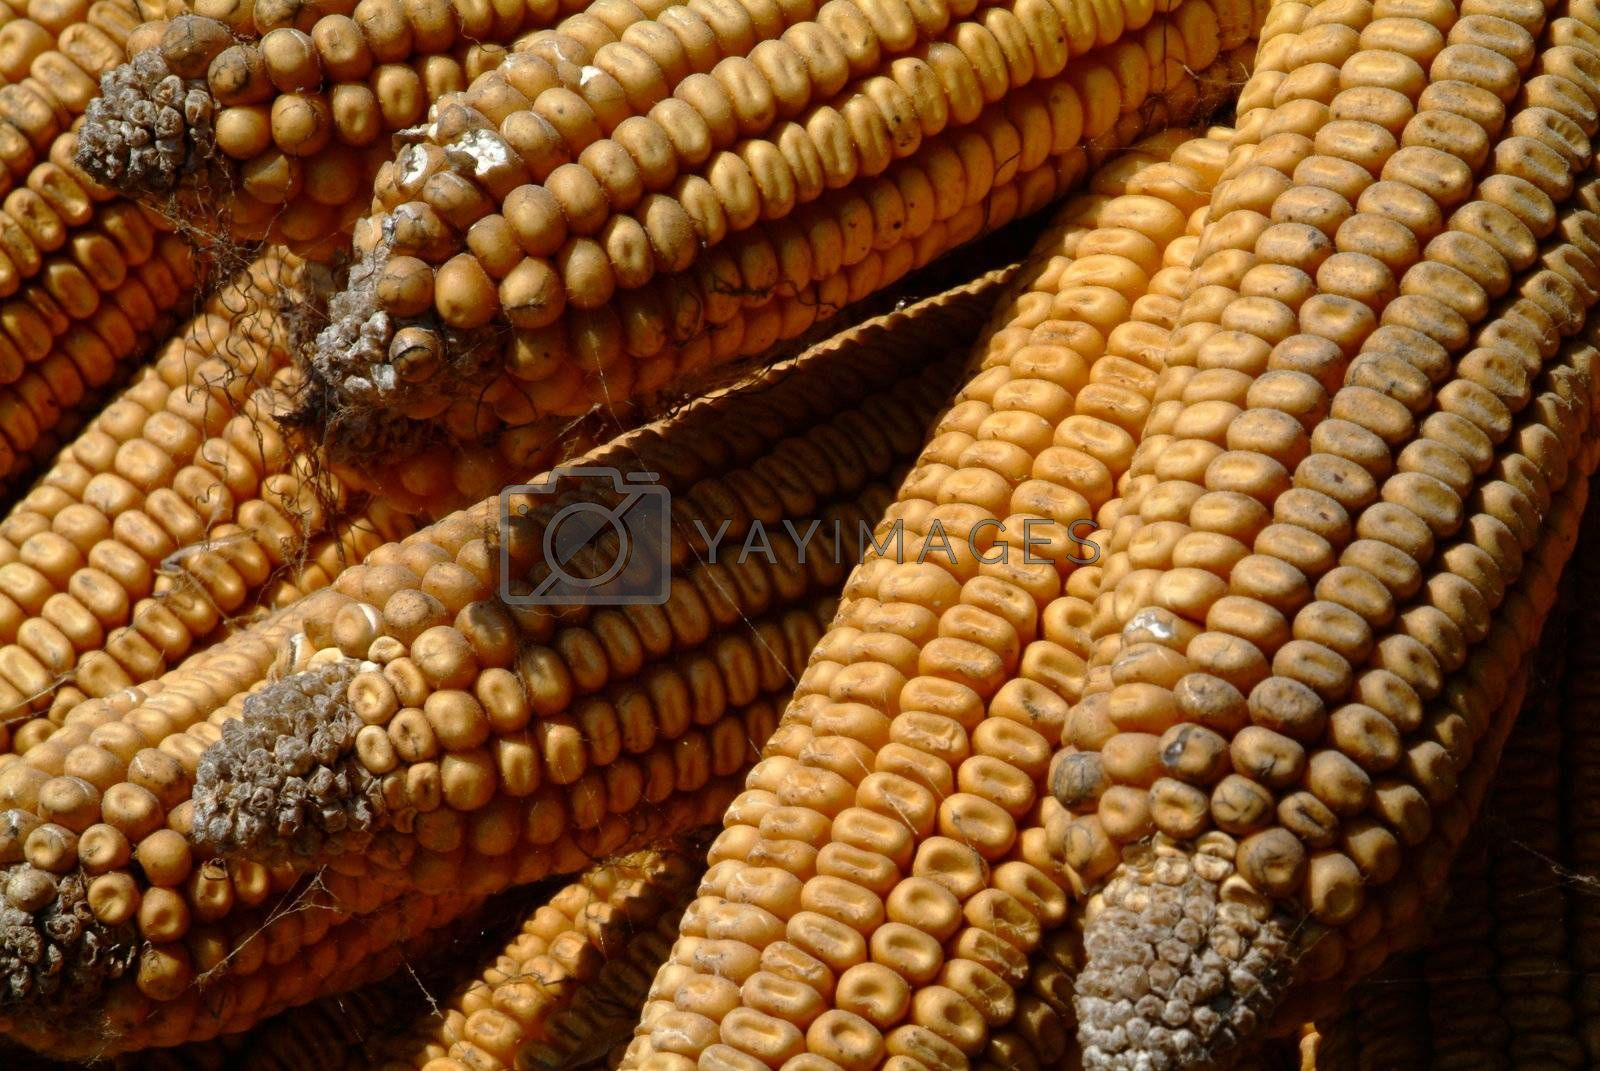 some old and dry yellow corn cobs